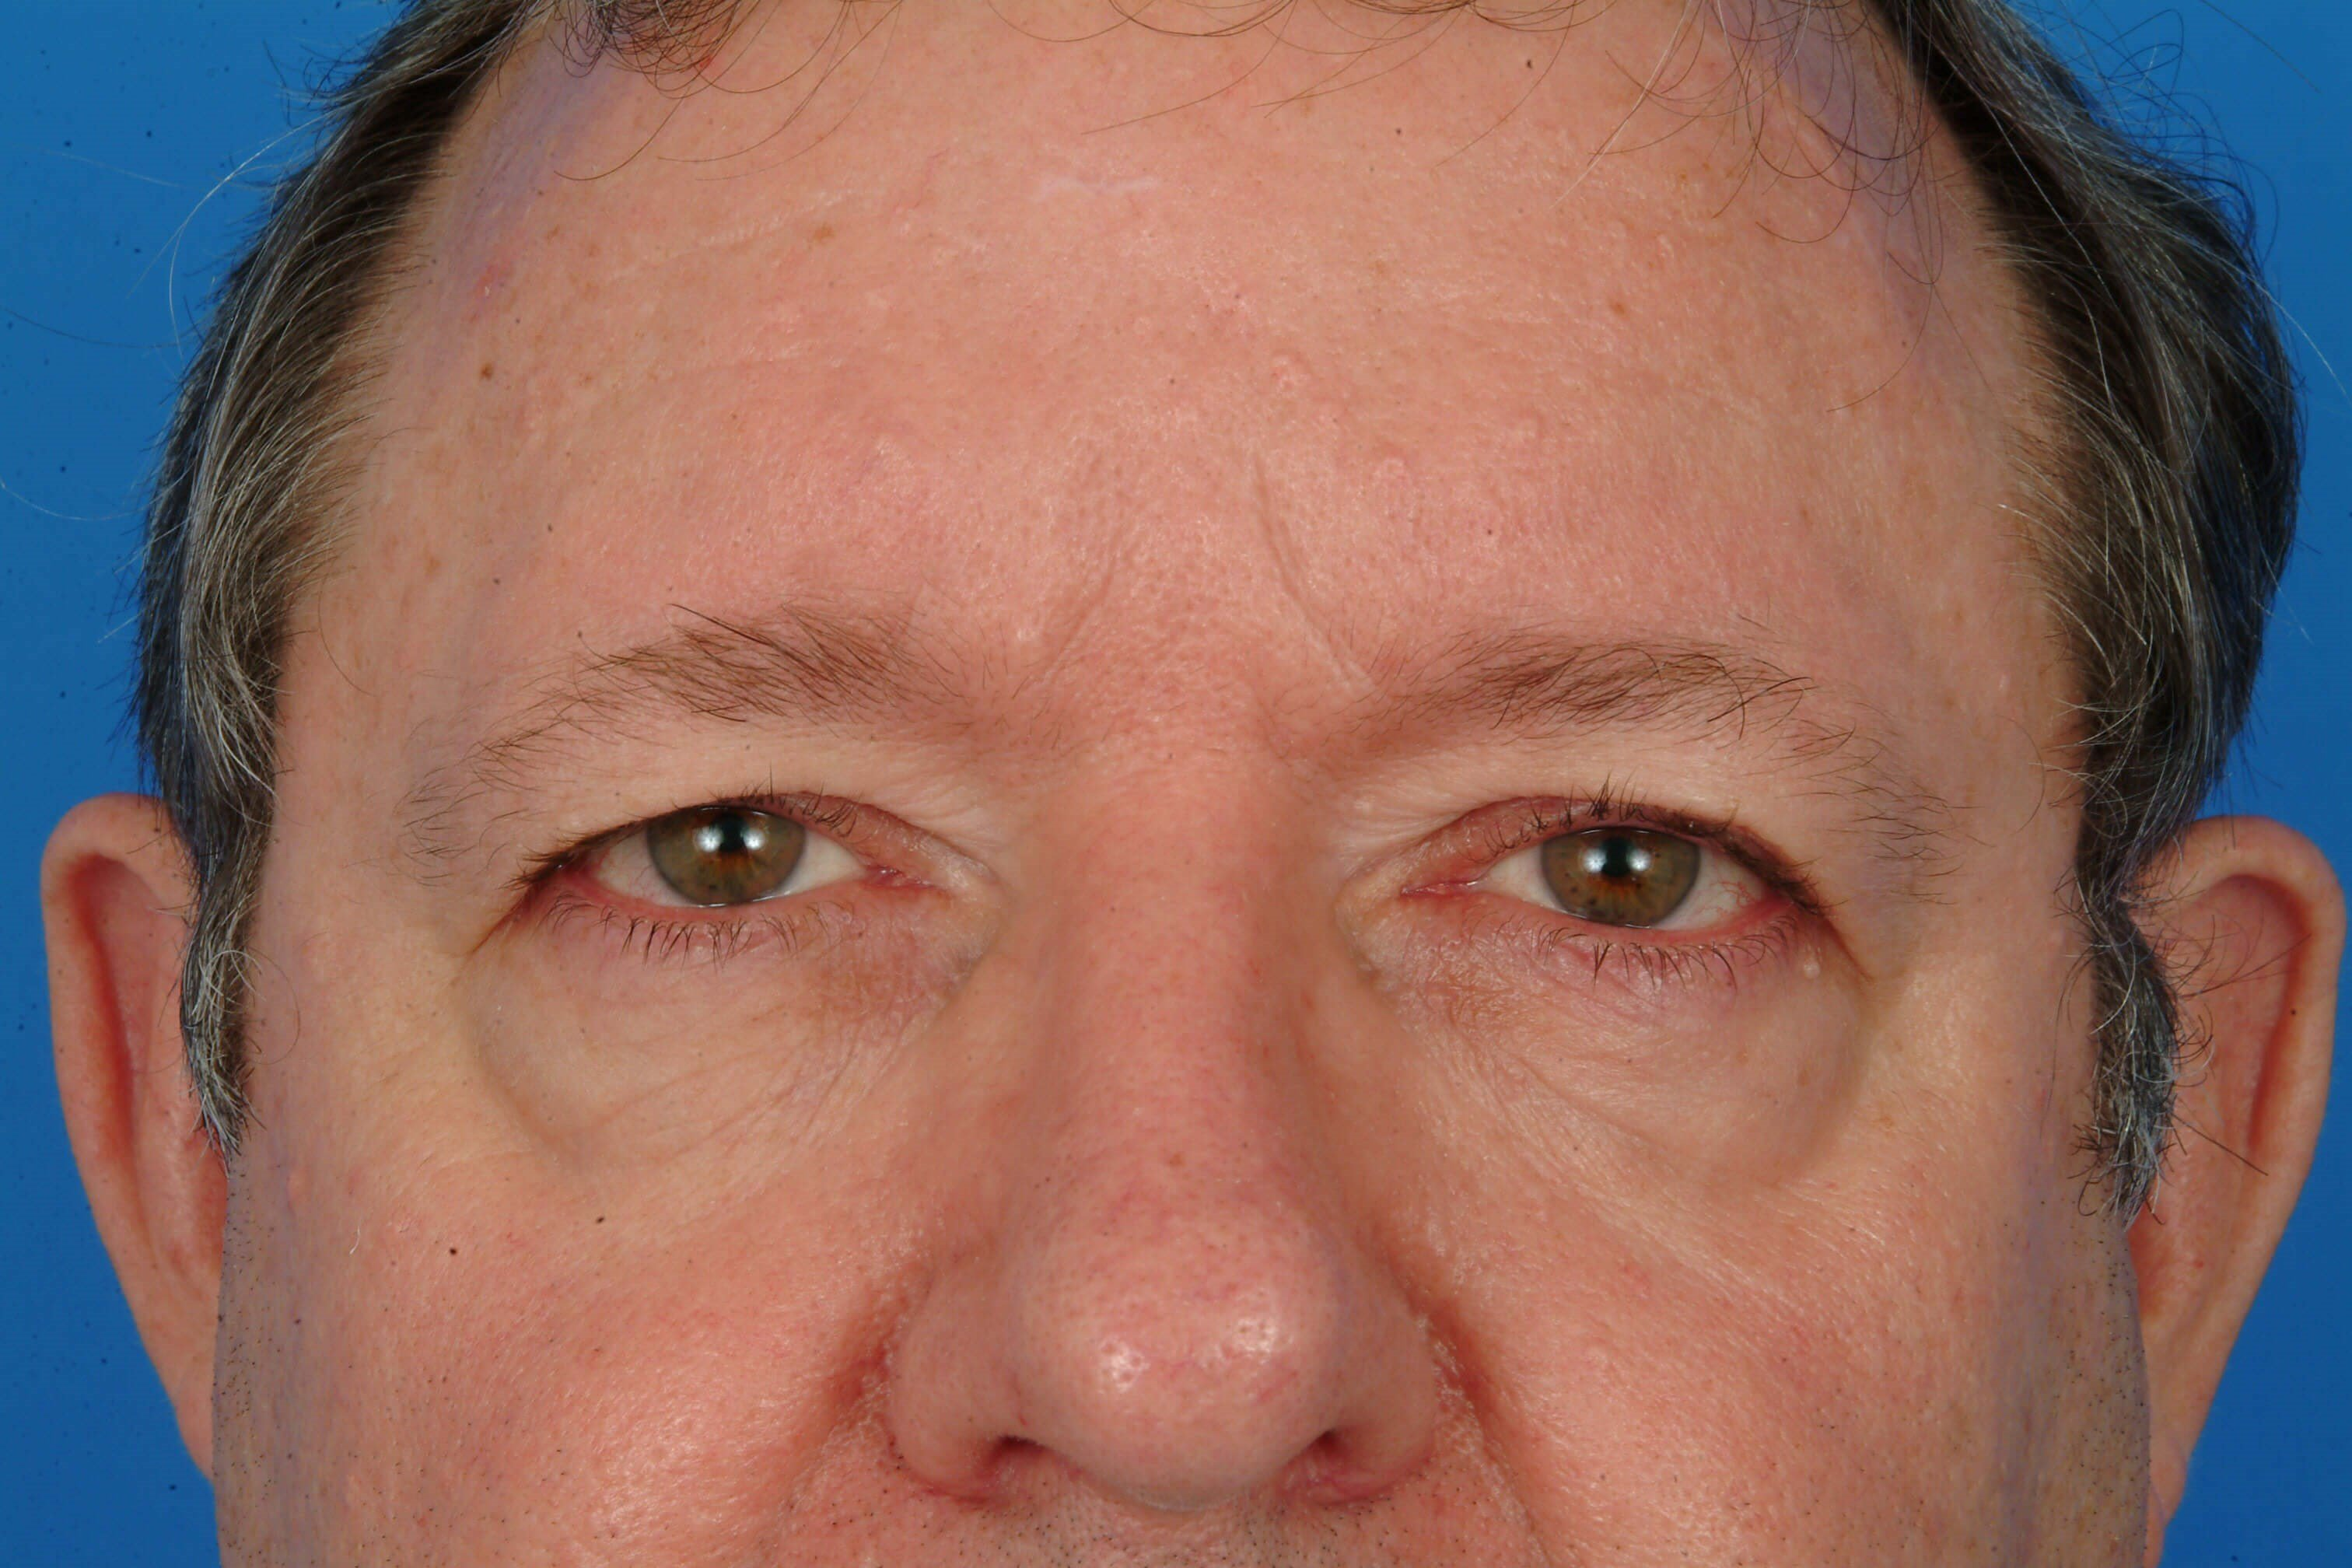 Close-up (flash) Before: Blepharoplasty